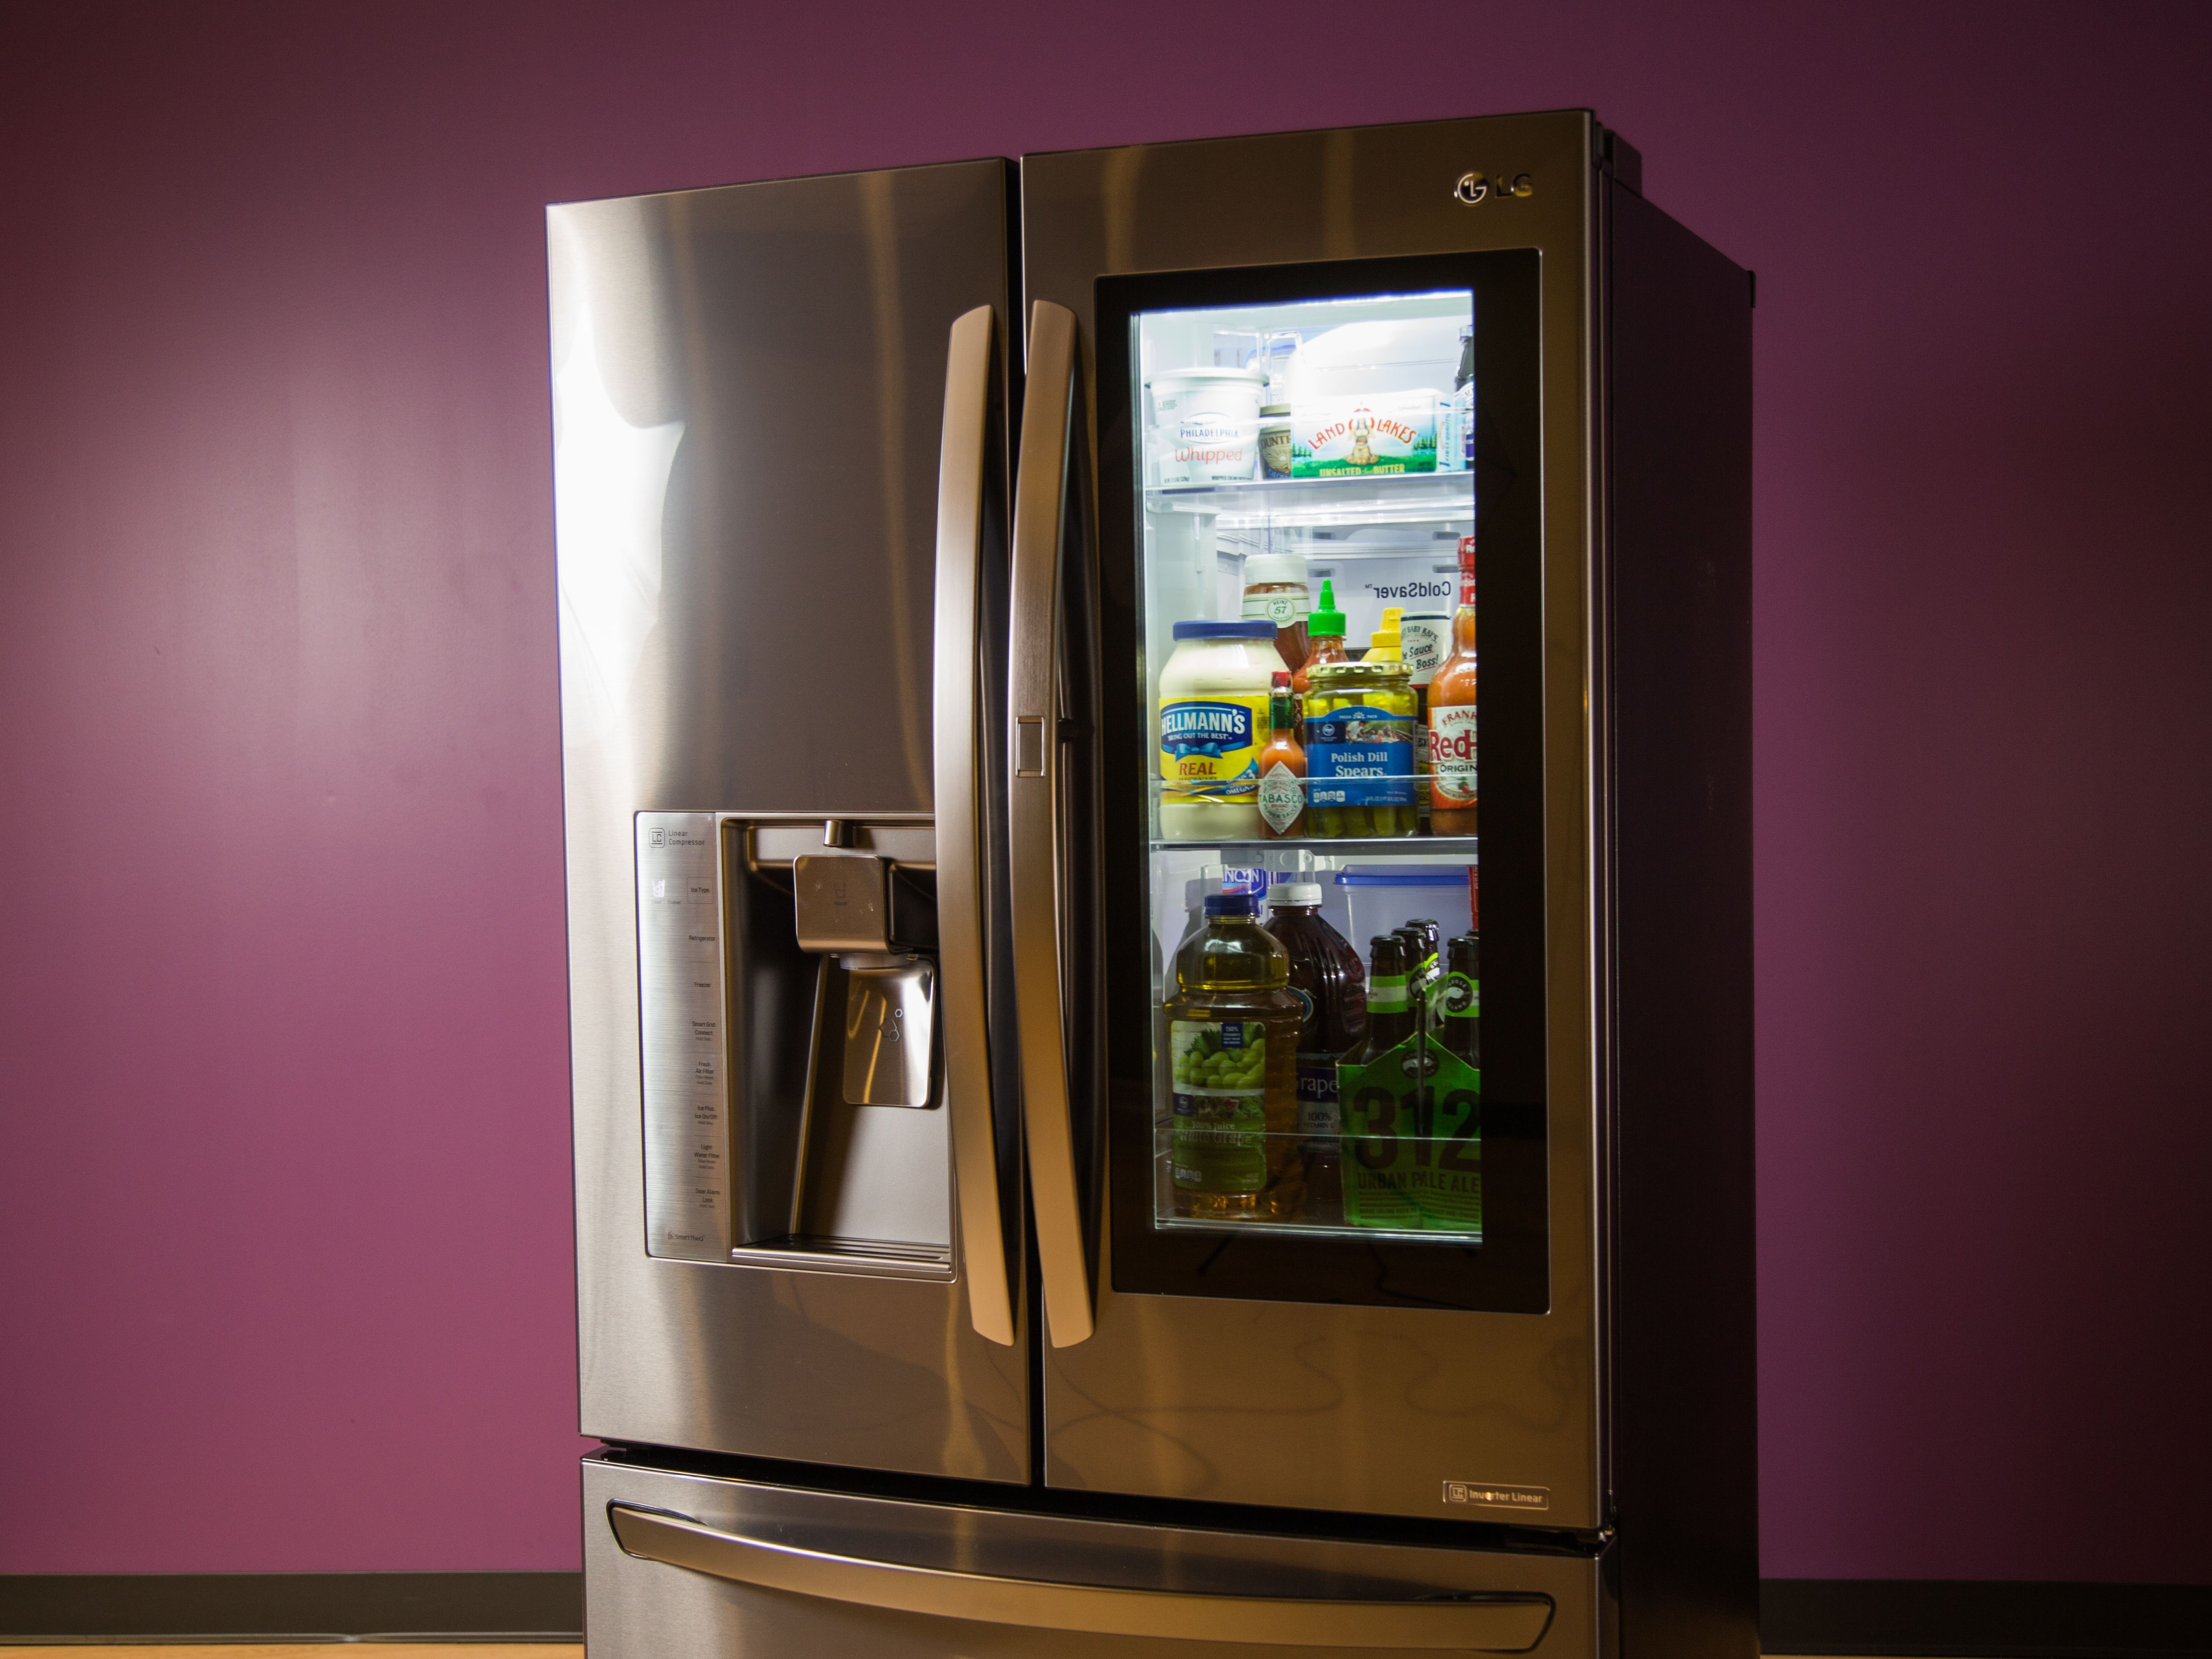 Lg Adds A Tablet And Alexa To Its See Through Smart Fridge